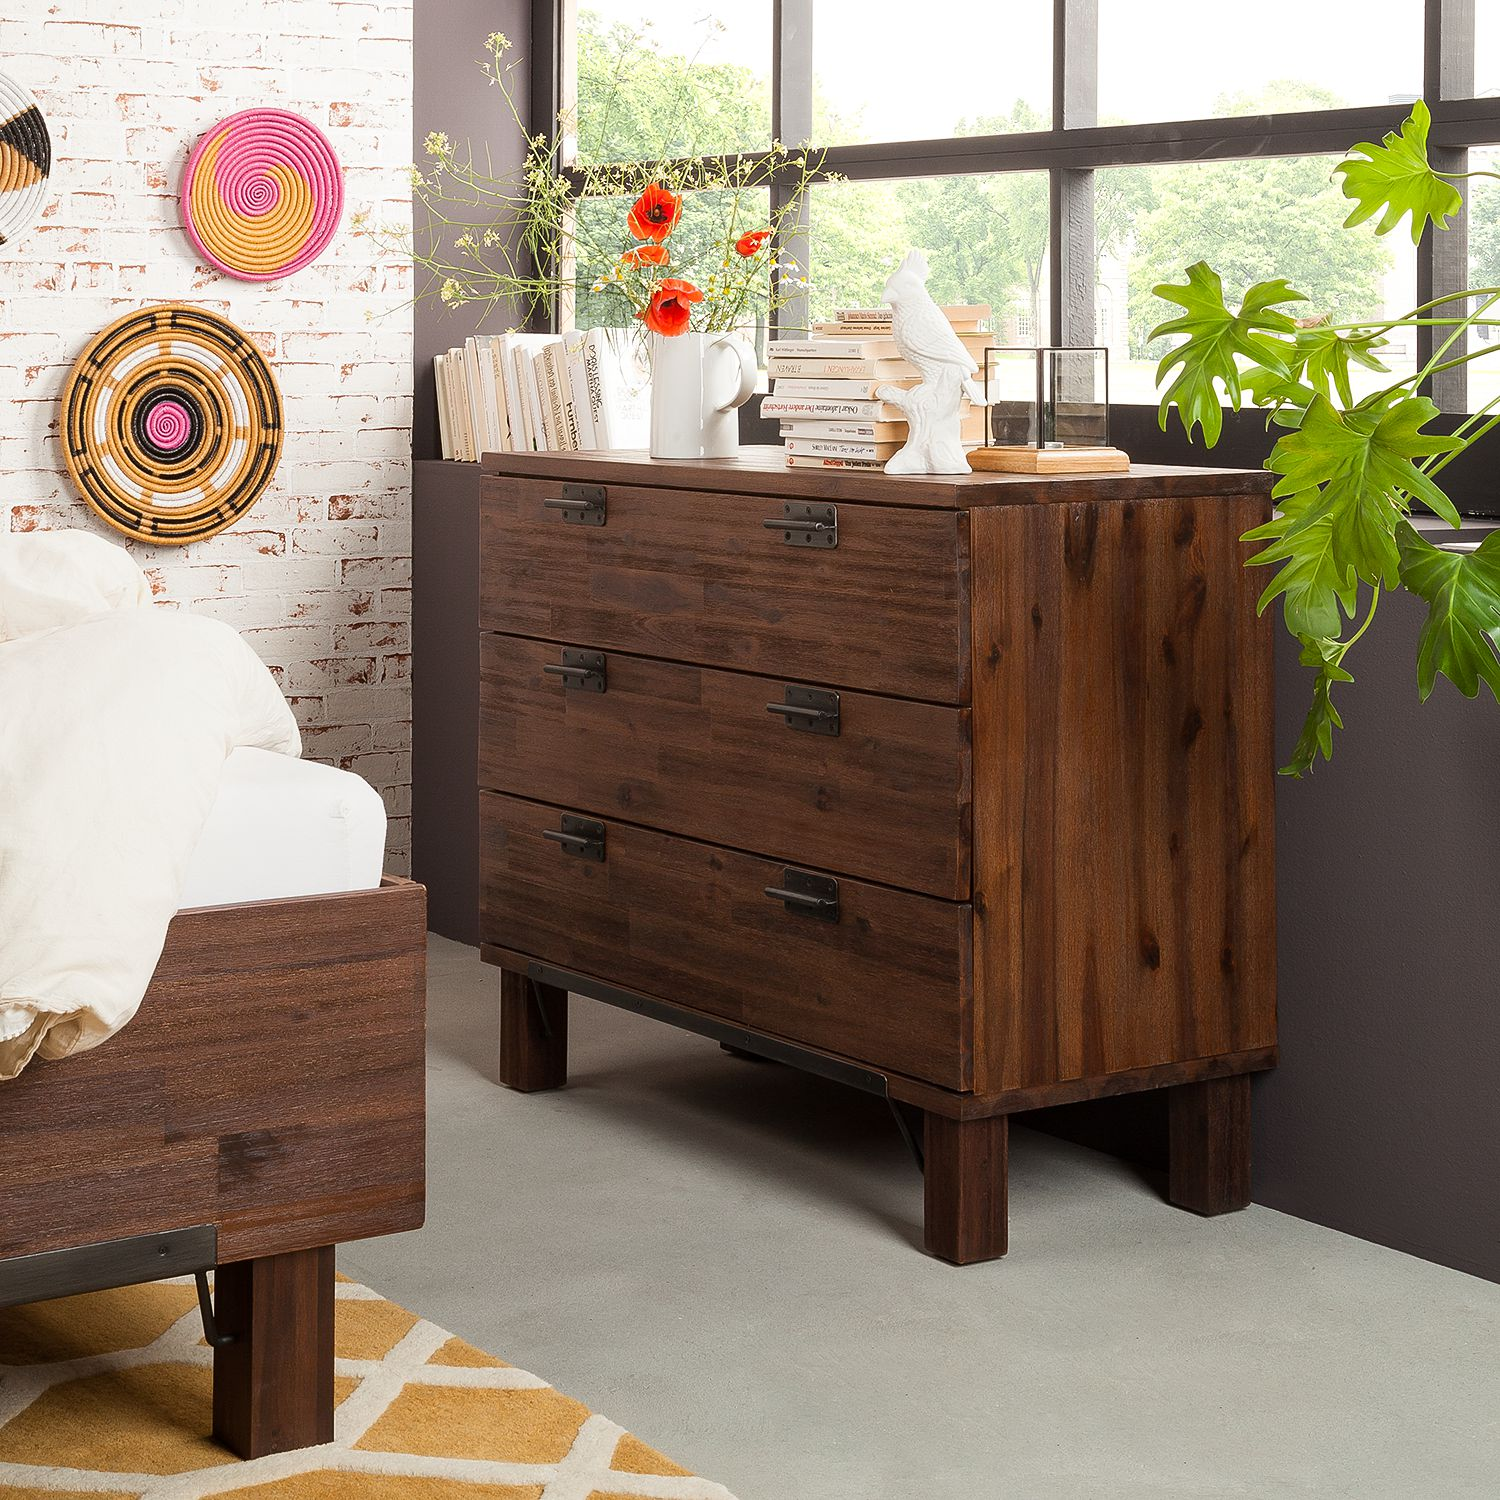 30 sparen kommode quadro von furnlab nur 349 99 cherry m bel home24. Black Bedroom Furniture Sets. Home Design Ideas